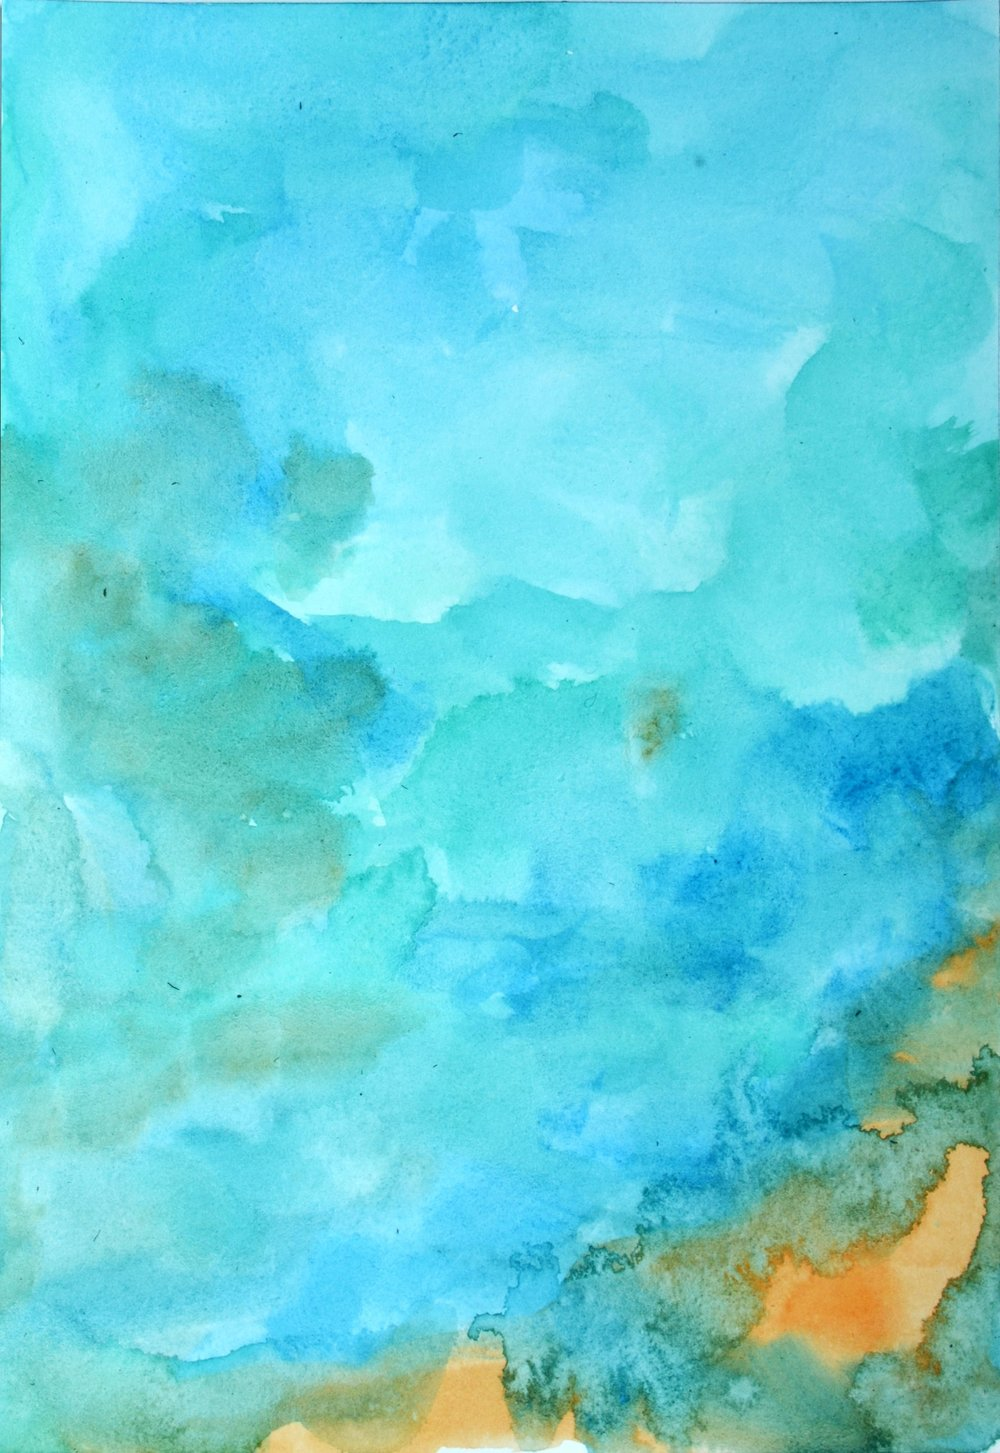 Aquamarine watercolor.jpg